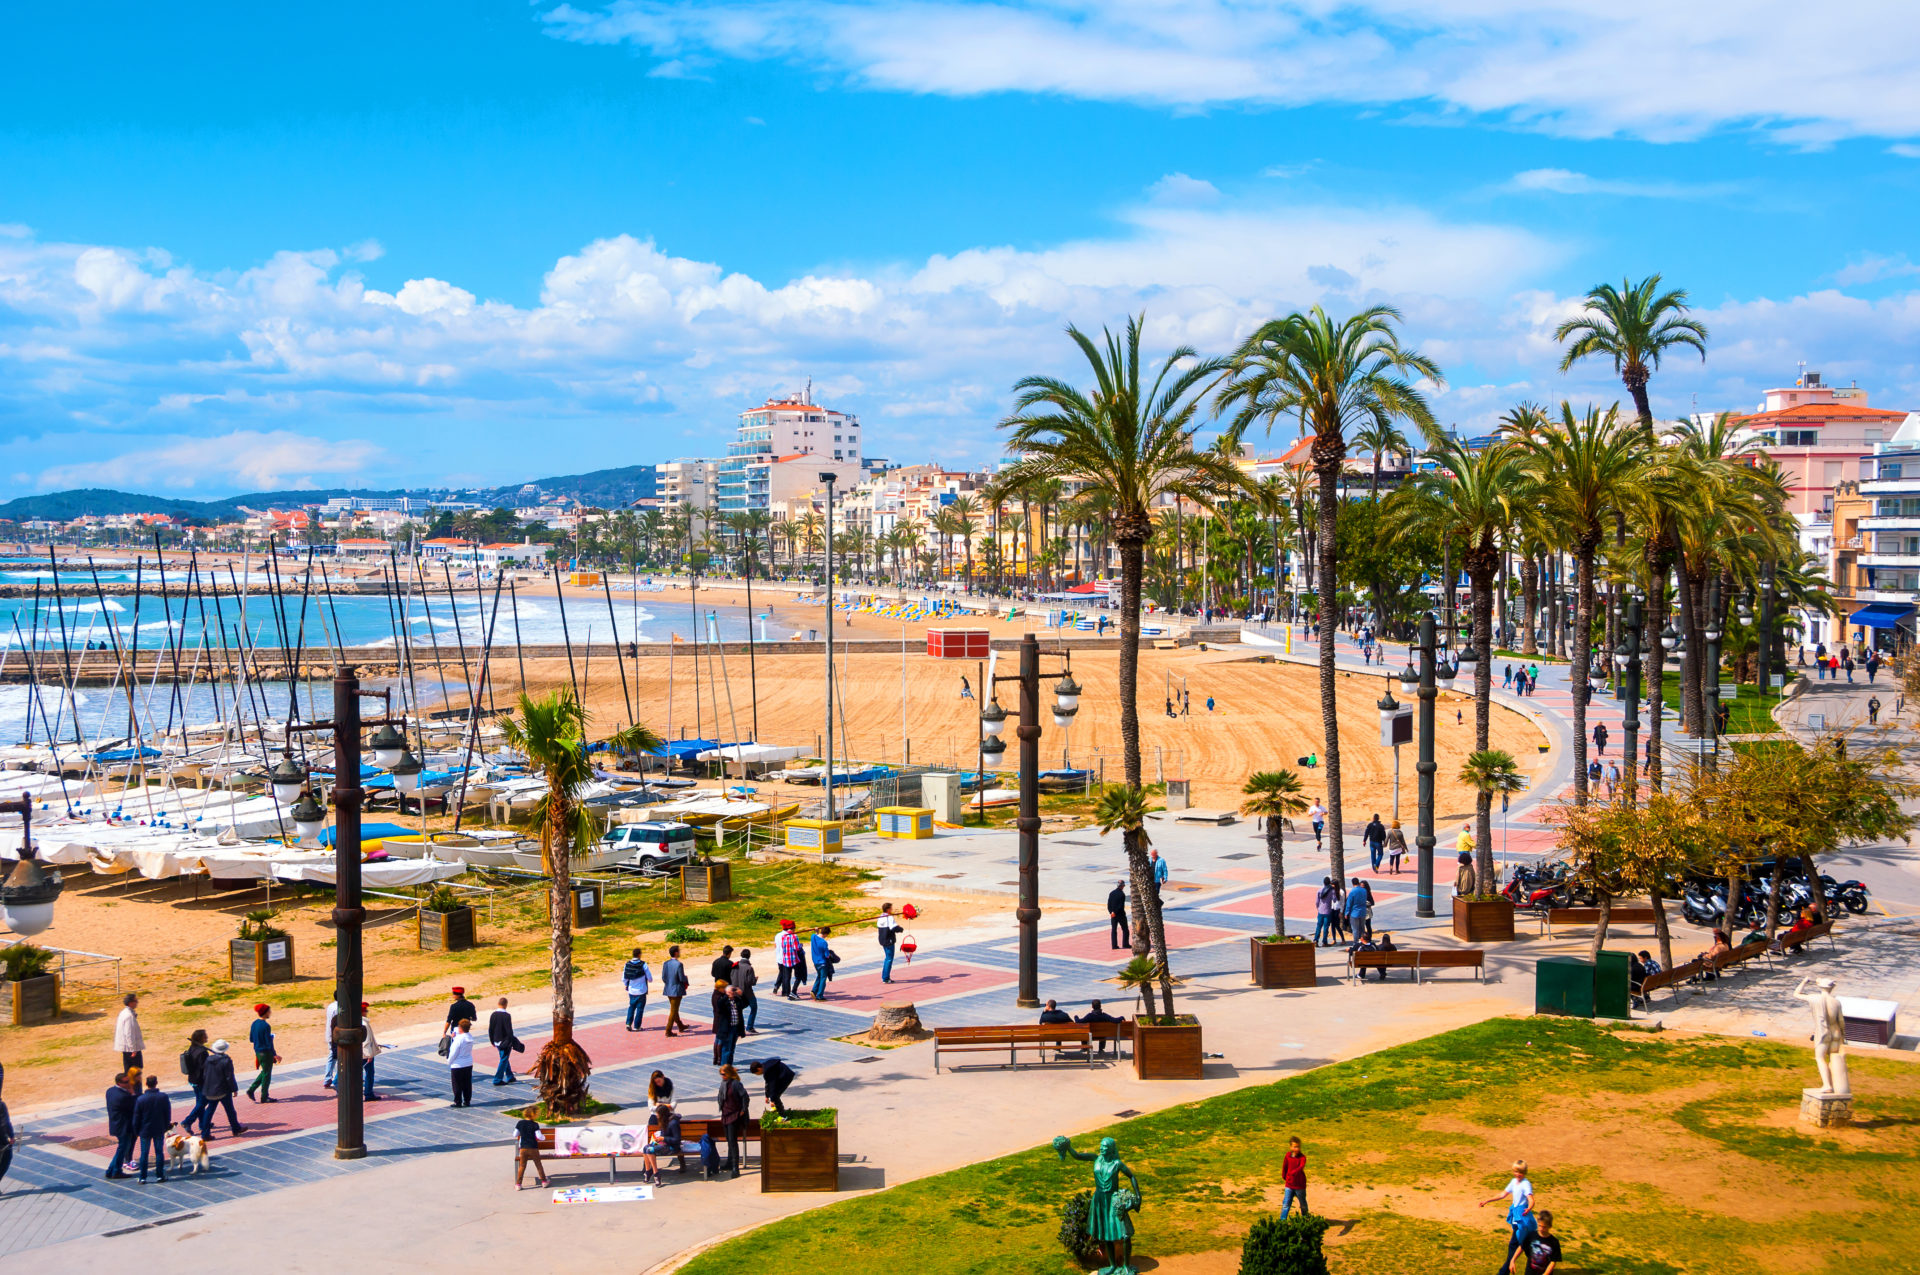 Golden beach and palm trees in Sitges